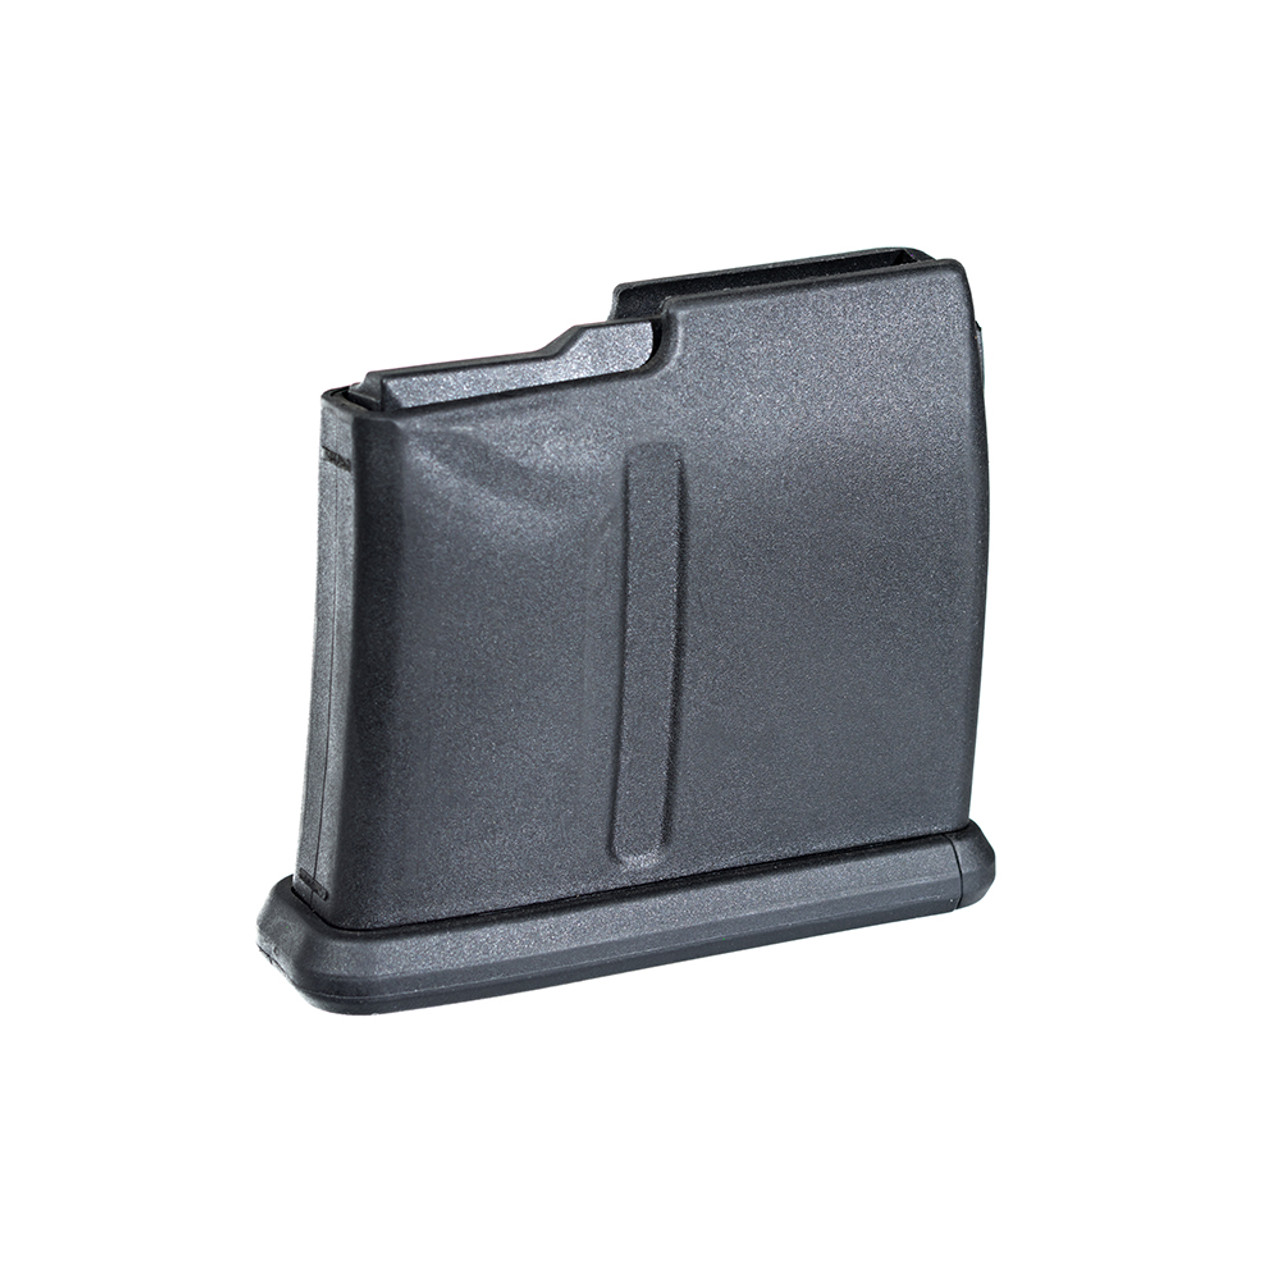 Archangel® Magnum Caliber .300 WIN, 7mm Remington® Magnum Magazine for the AA700MLA & AA1500MLA Stocks (10) Rd - Black Polymer